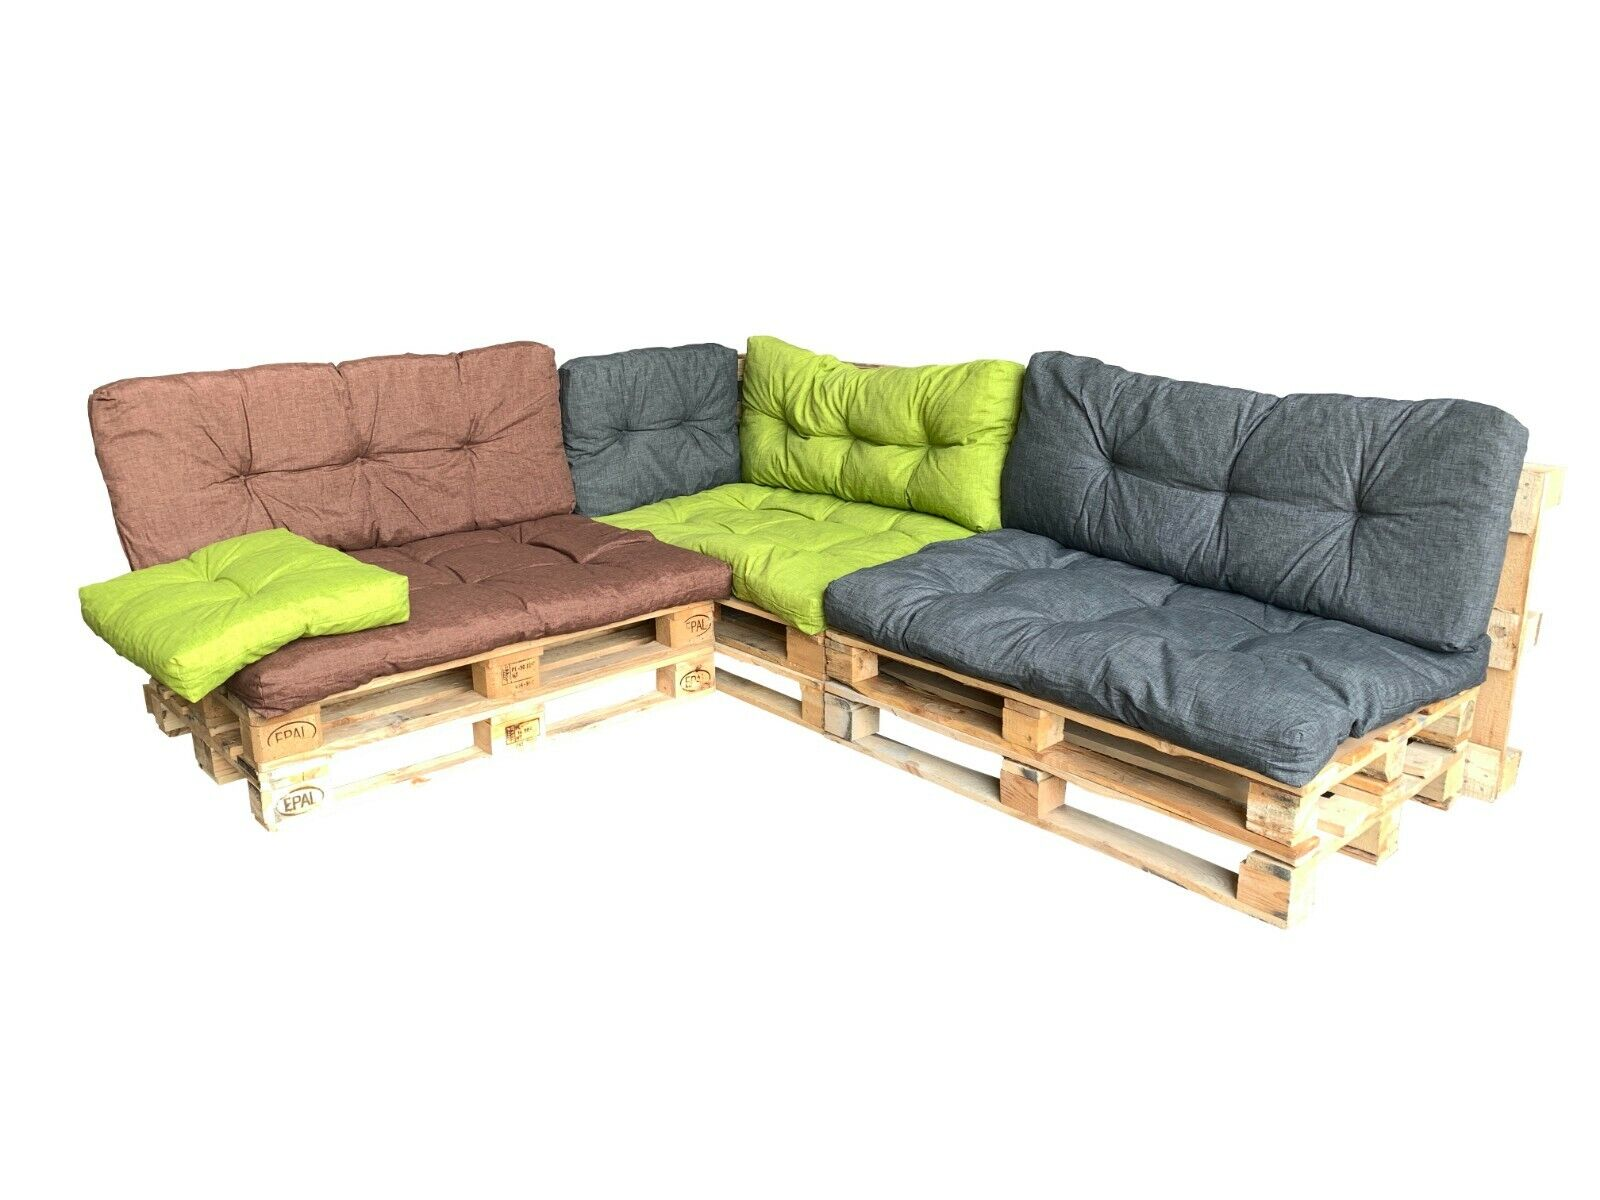 Garden Furniture - Garden Patio Pallet Furniture Cushion Seating & Backrest Set, Reversible Cushion